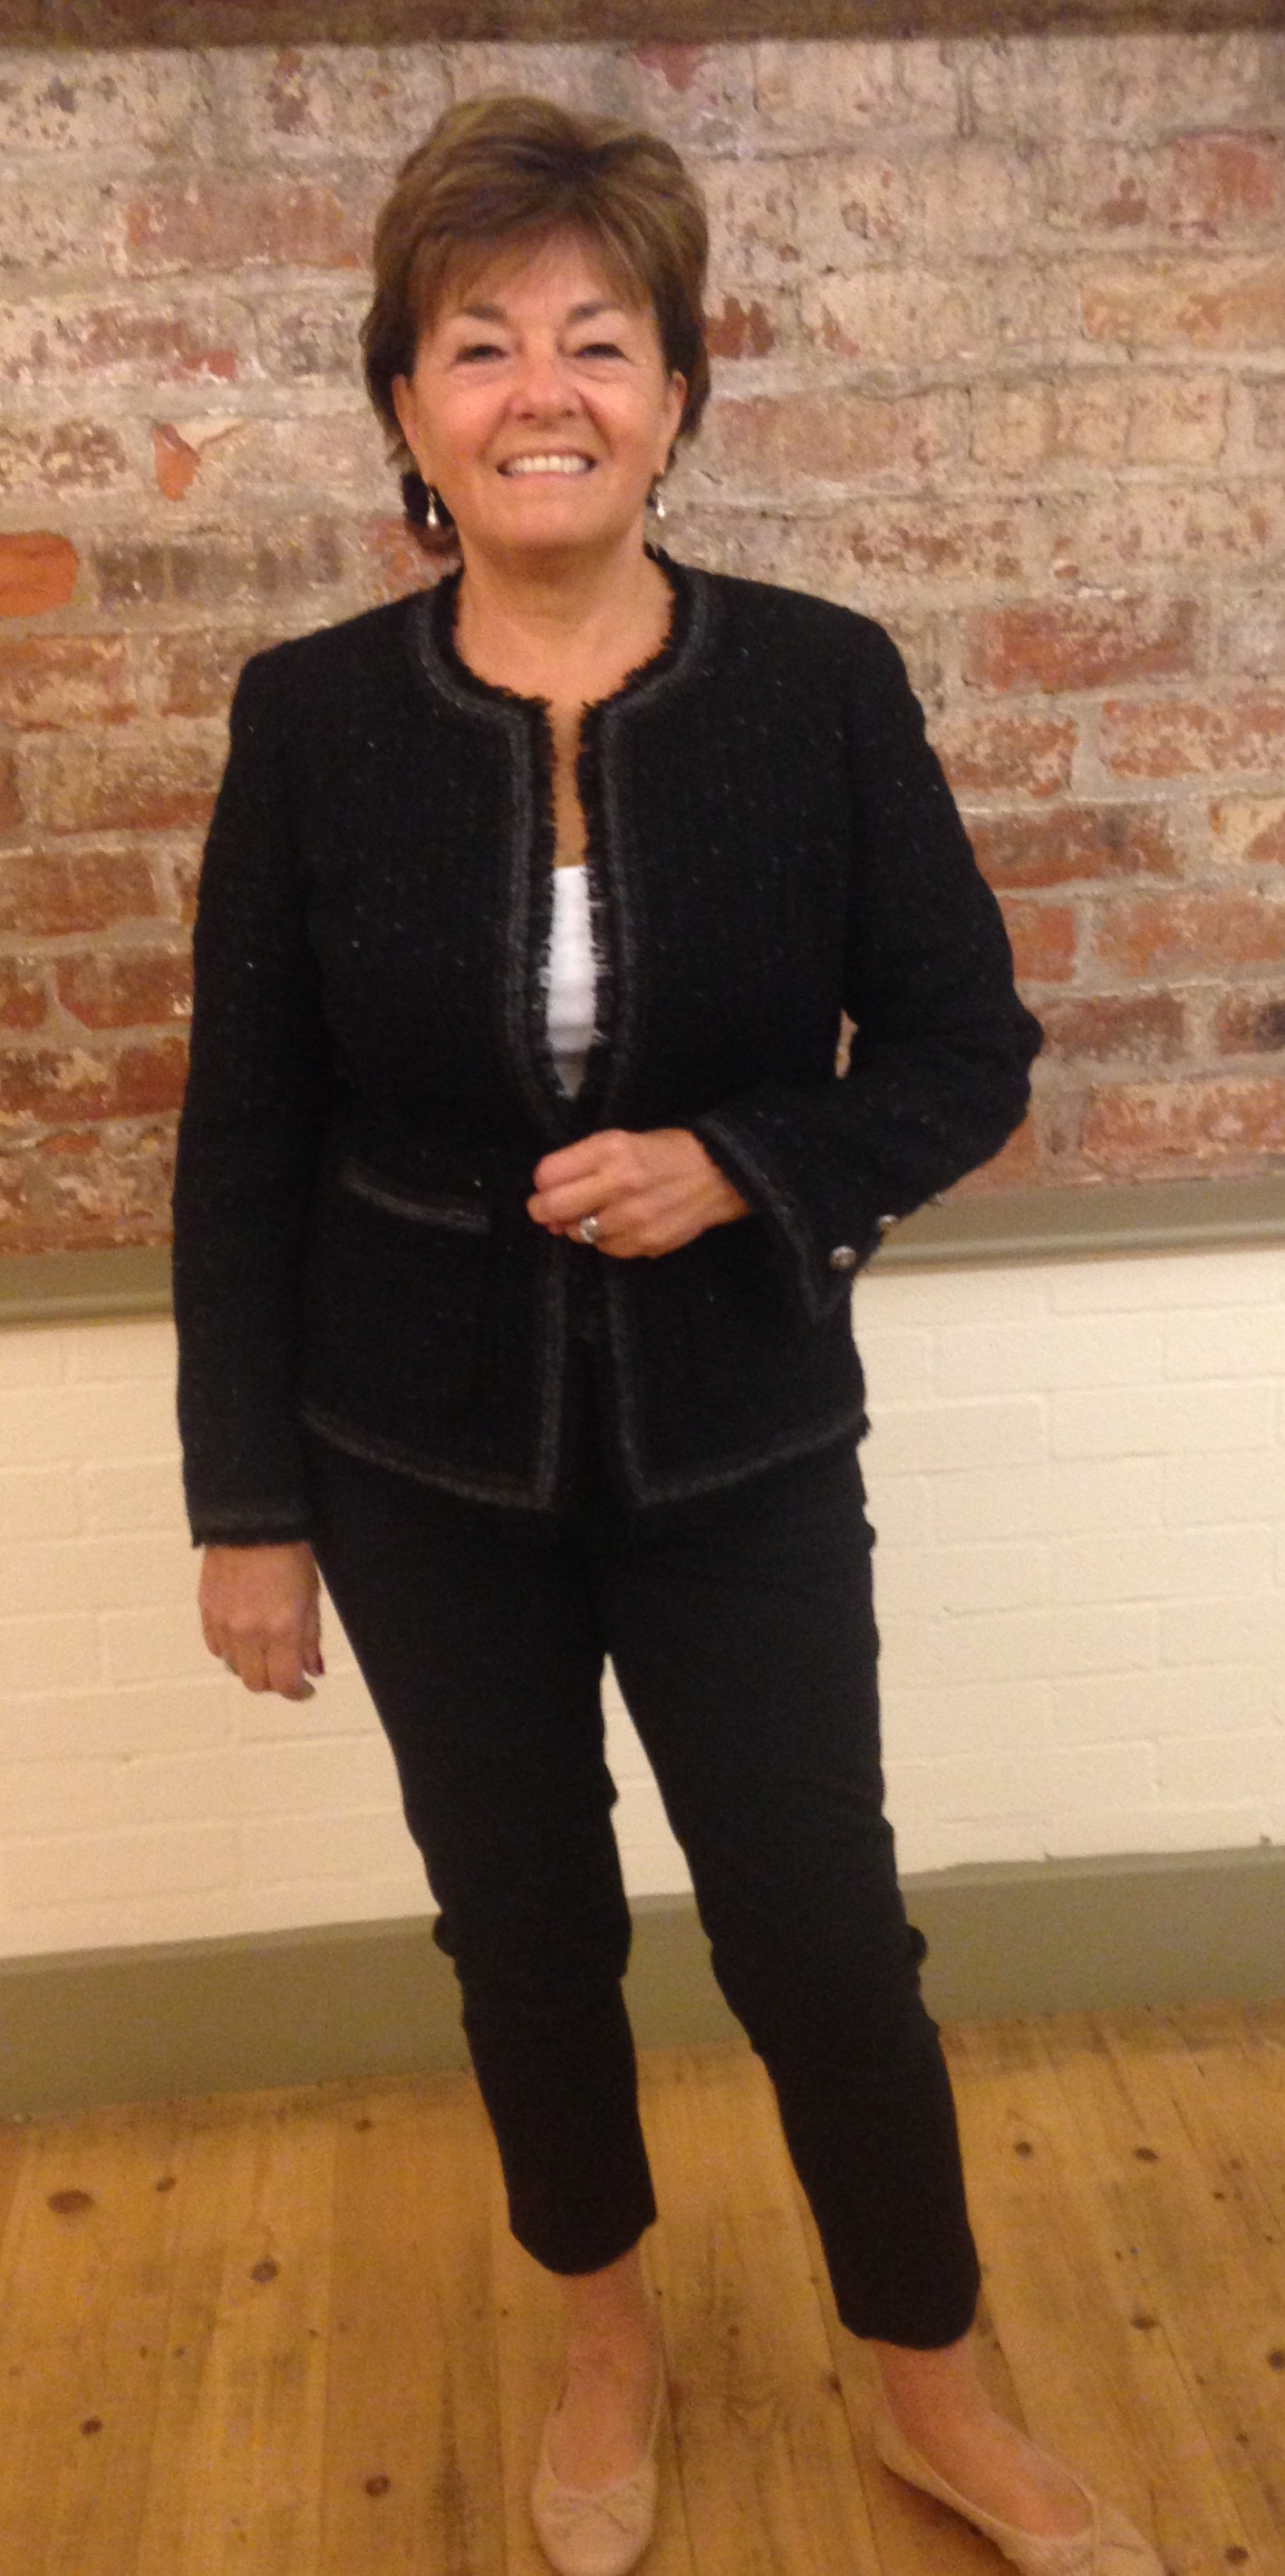 Chanel style jacket course - Jane White Couture Tuition